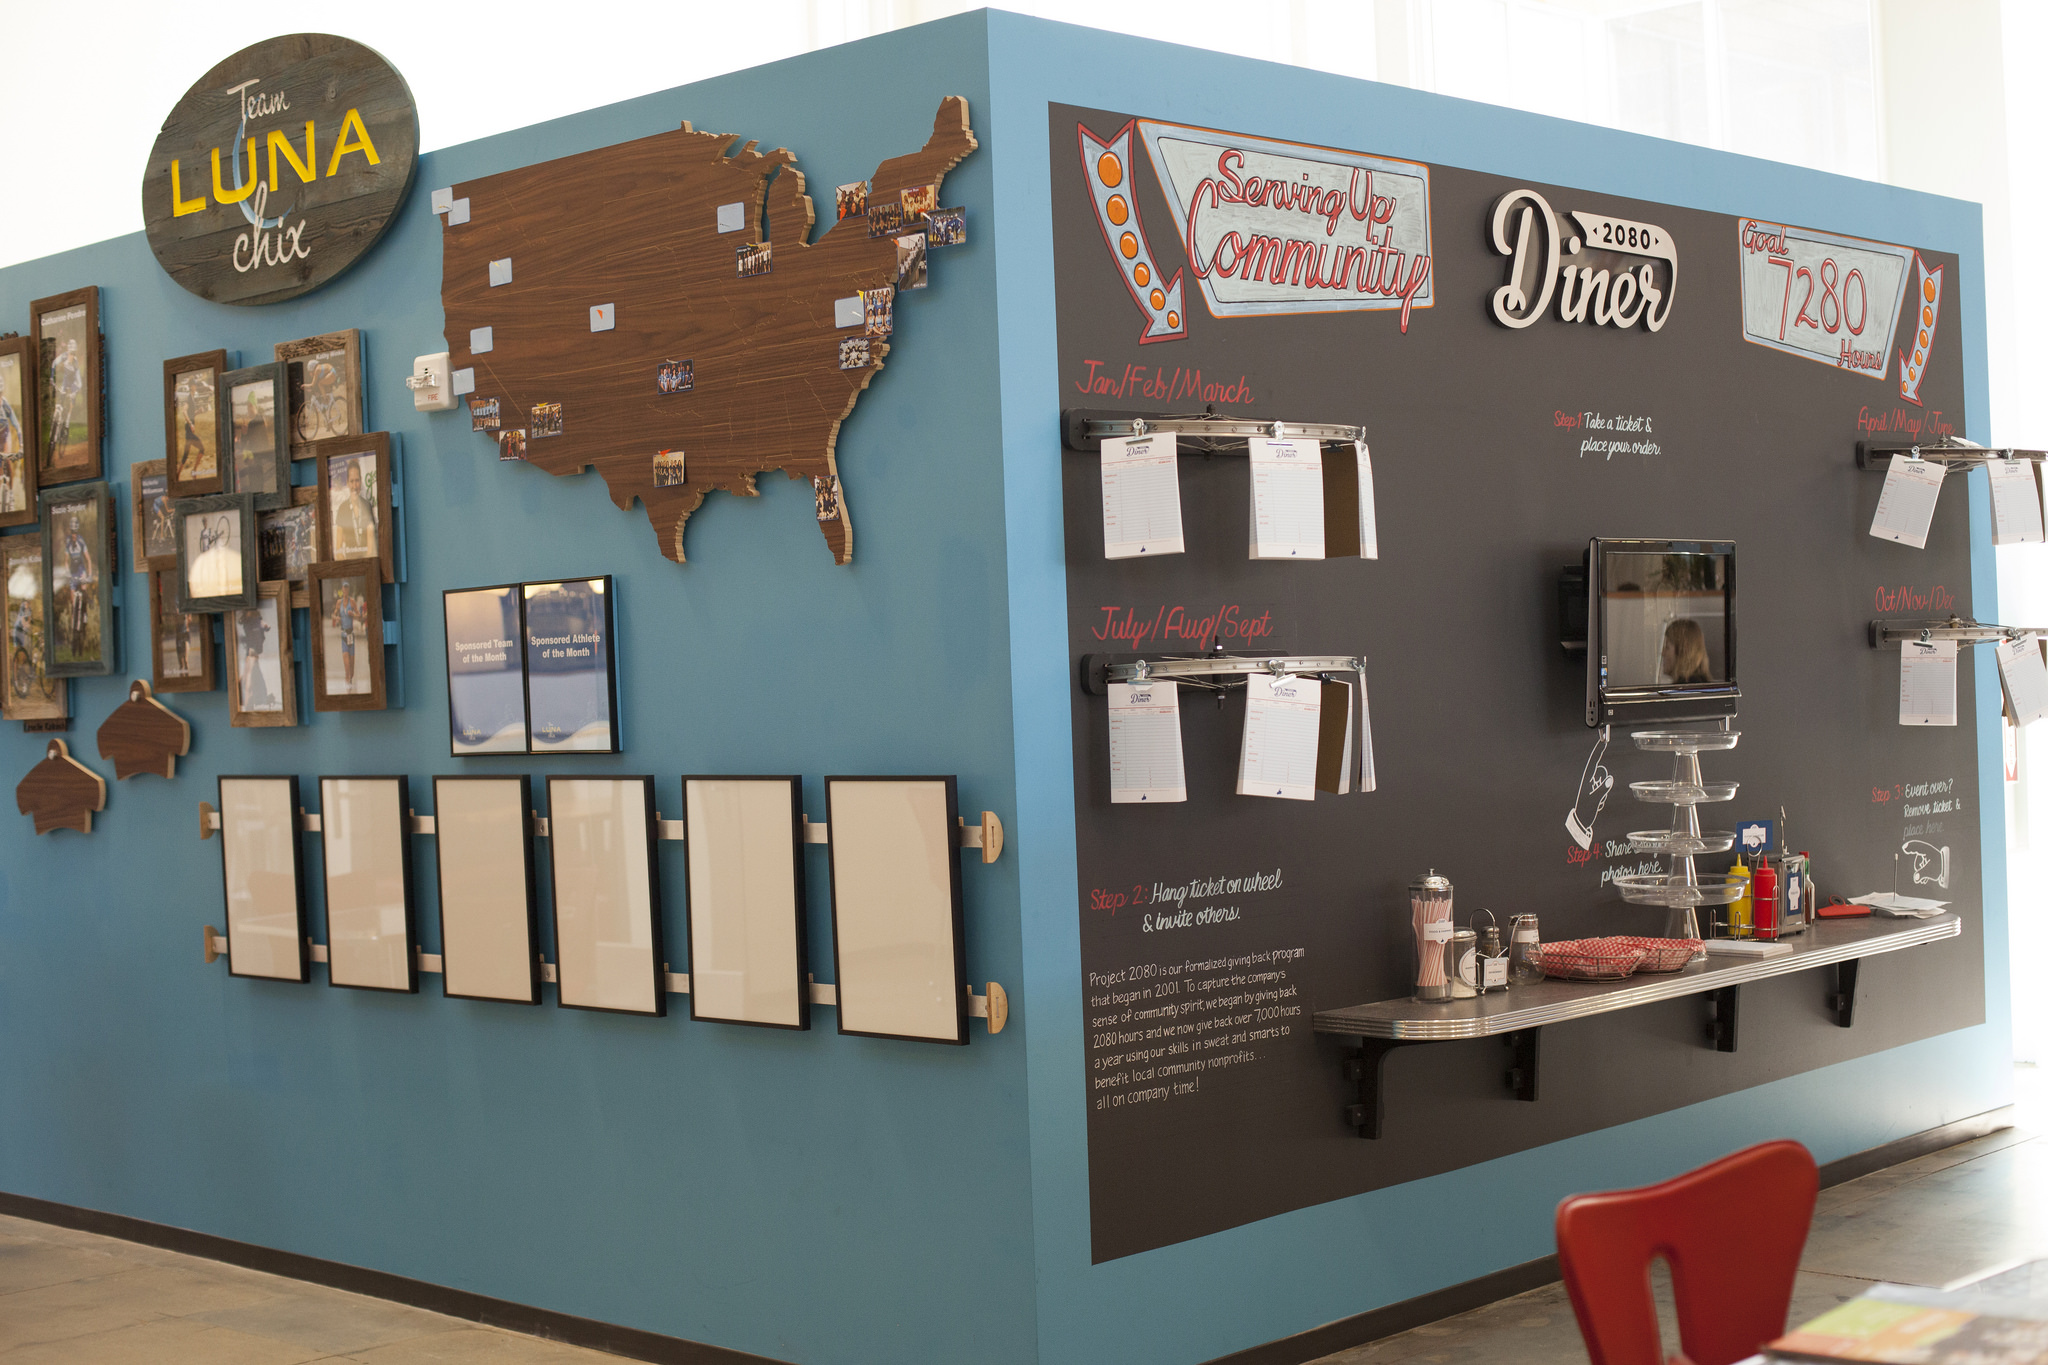 The Luna Chix wall shared a corner with  another interior promotional wall we helped create for Clif Bar.